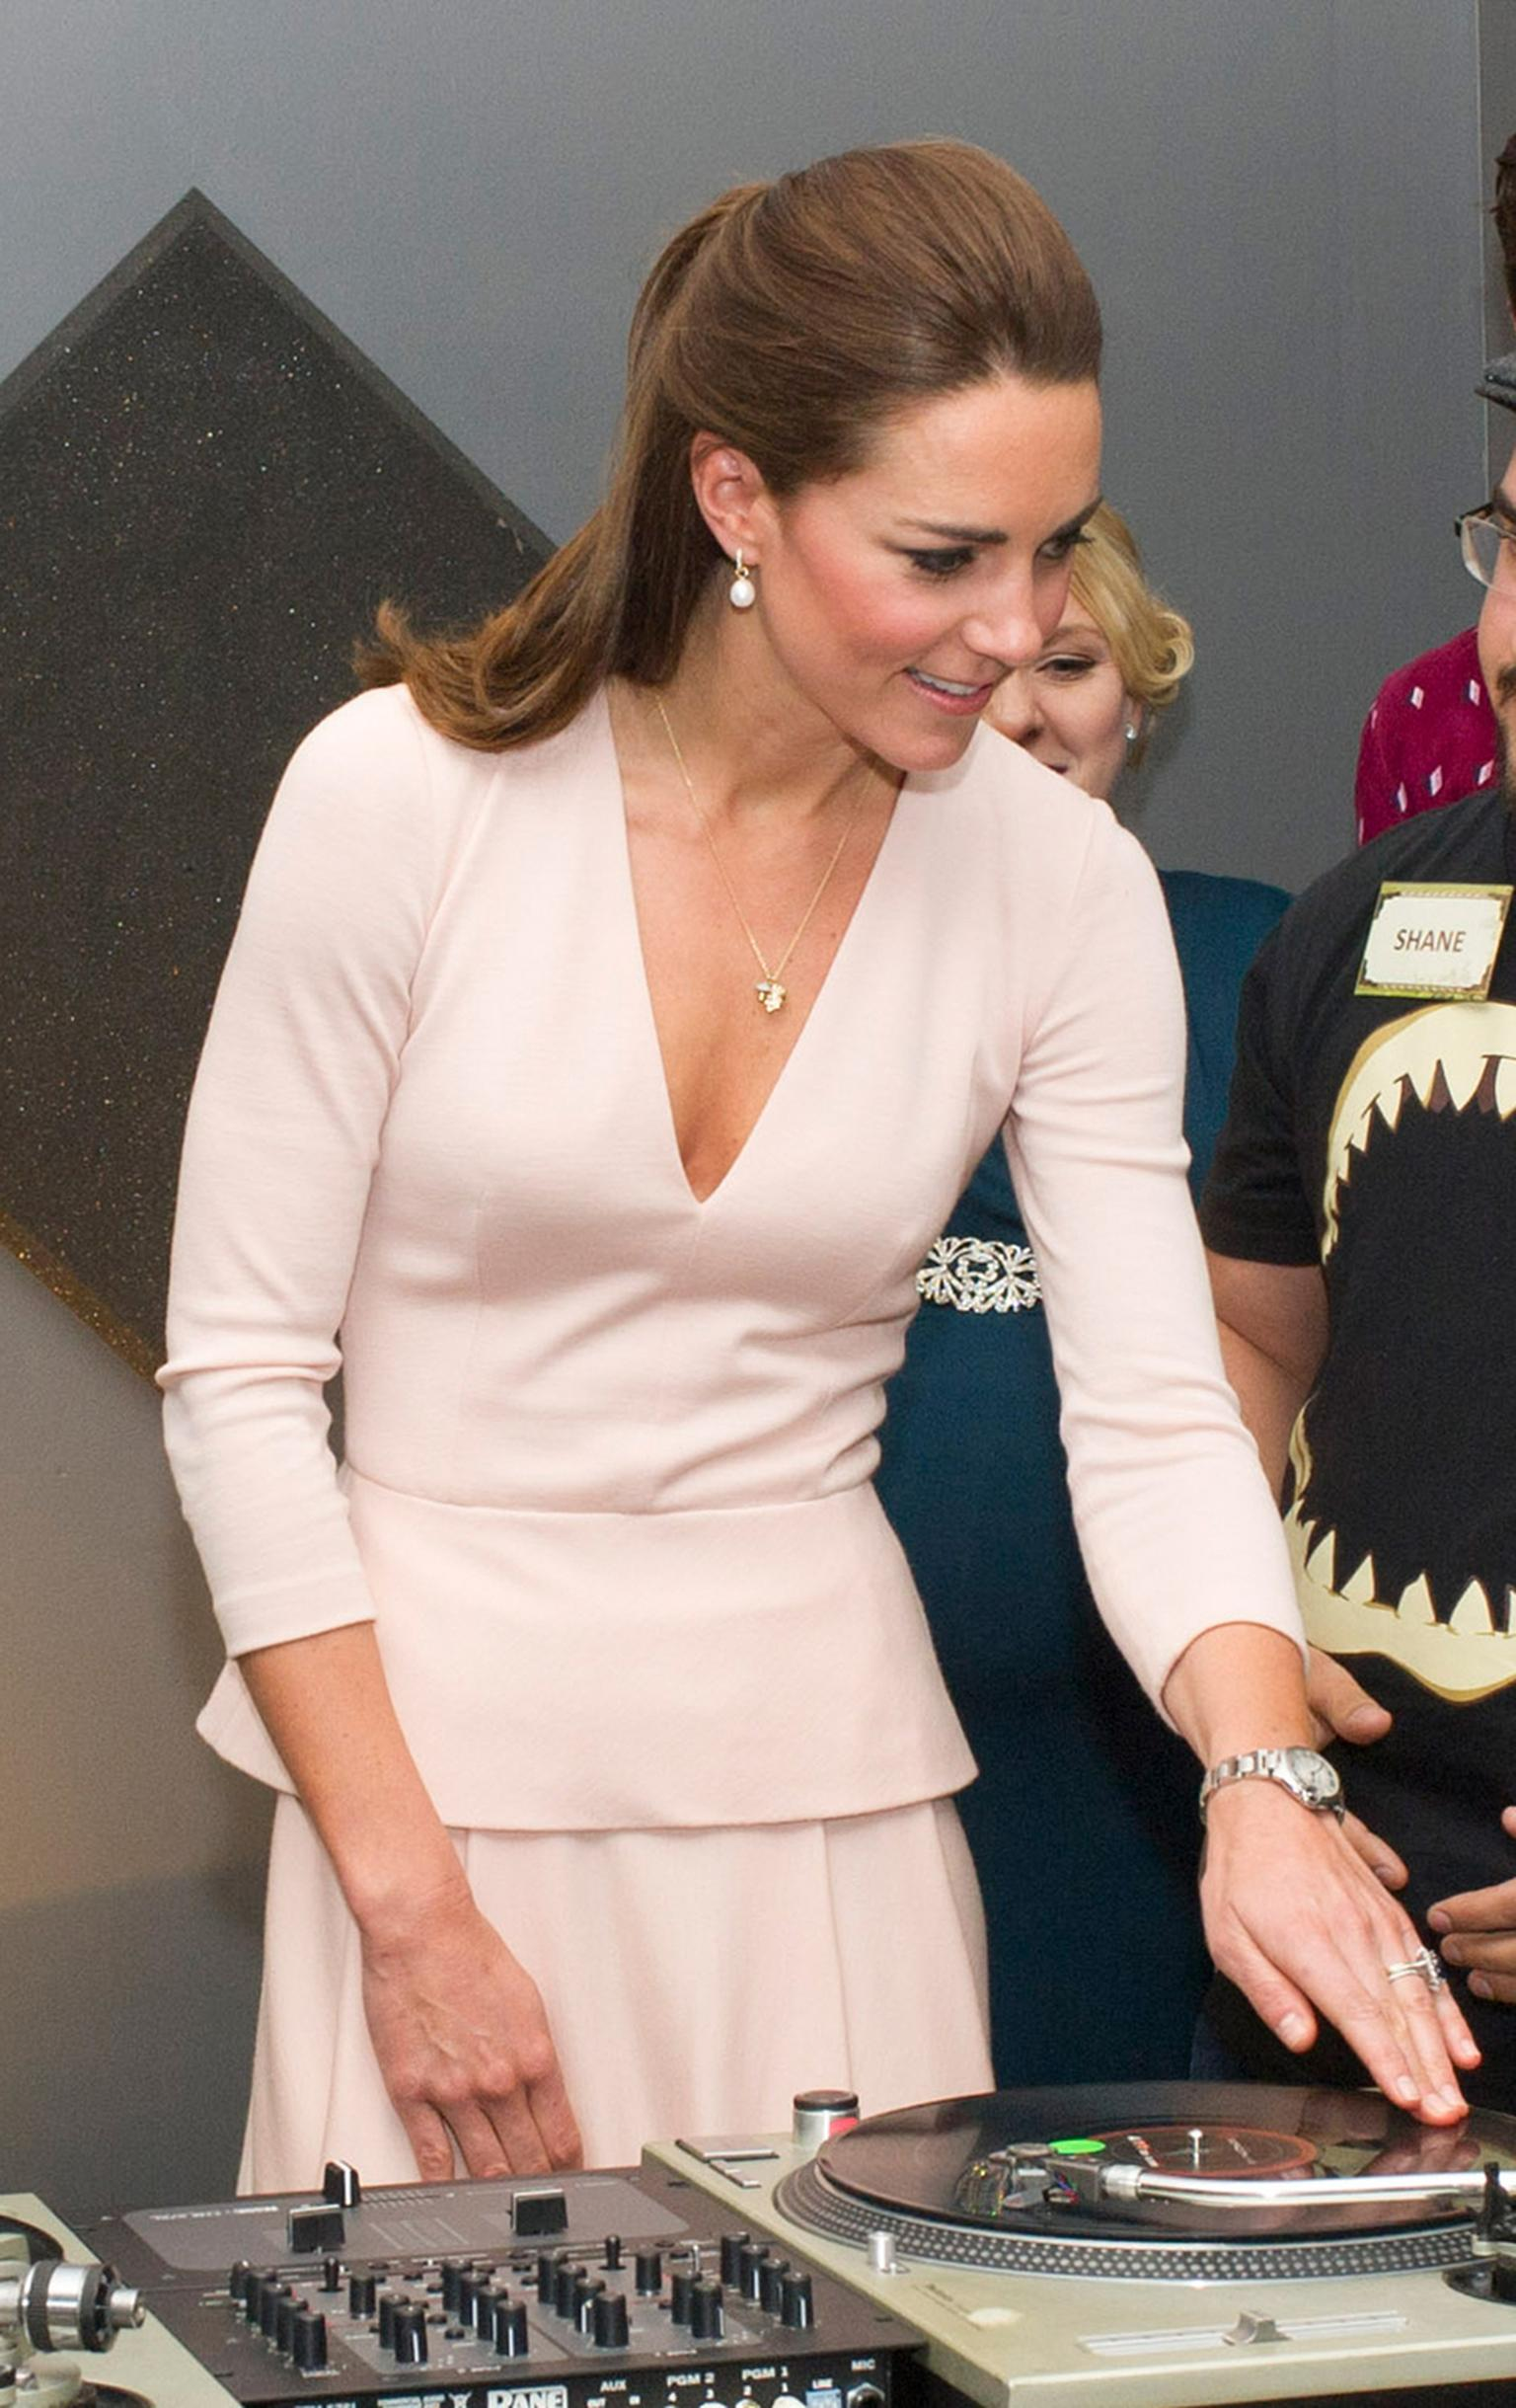 Kate Middleton staying true to her British roots in an Asprey charm necklace and Annoushka pearl earrings during the Royal Tour